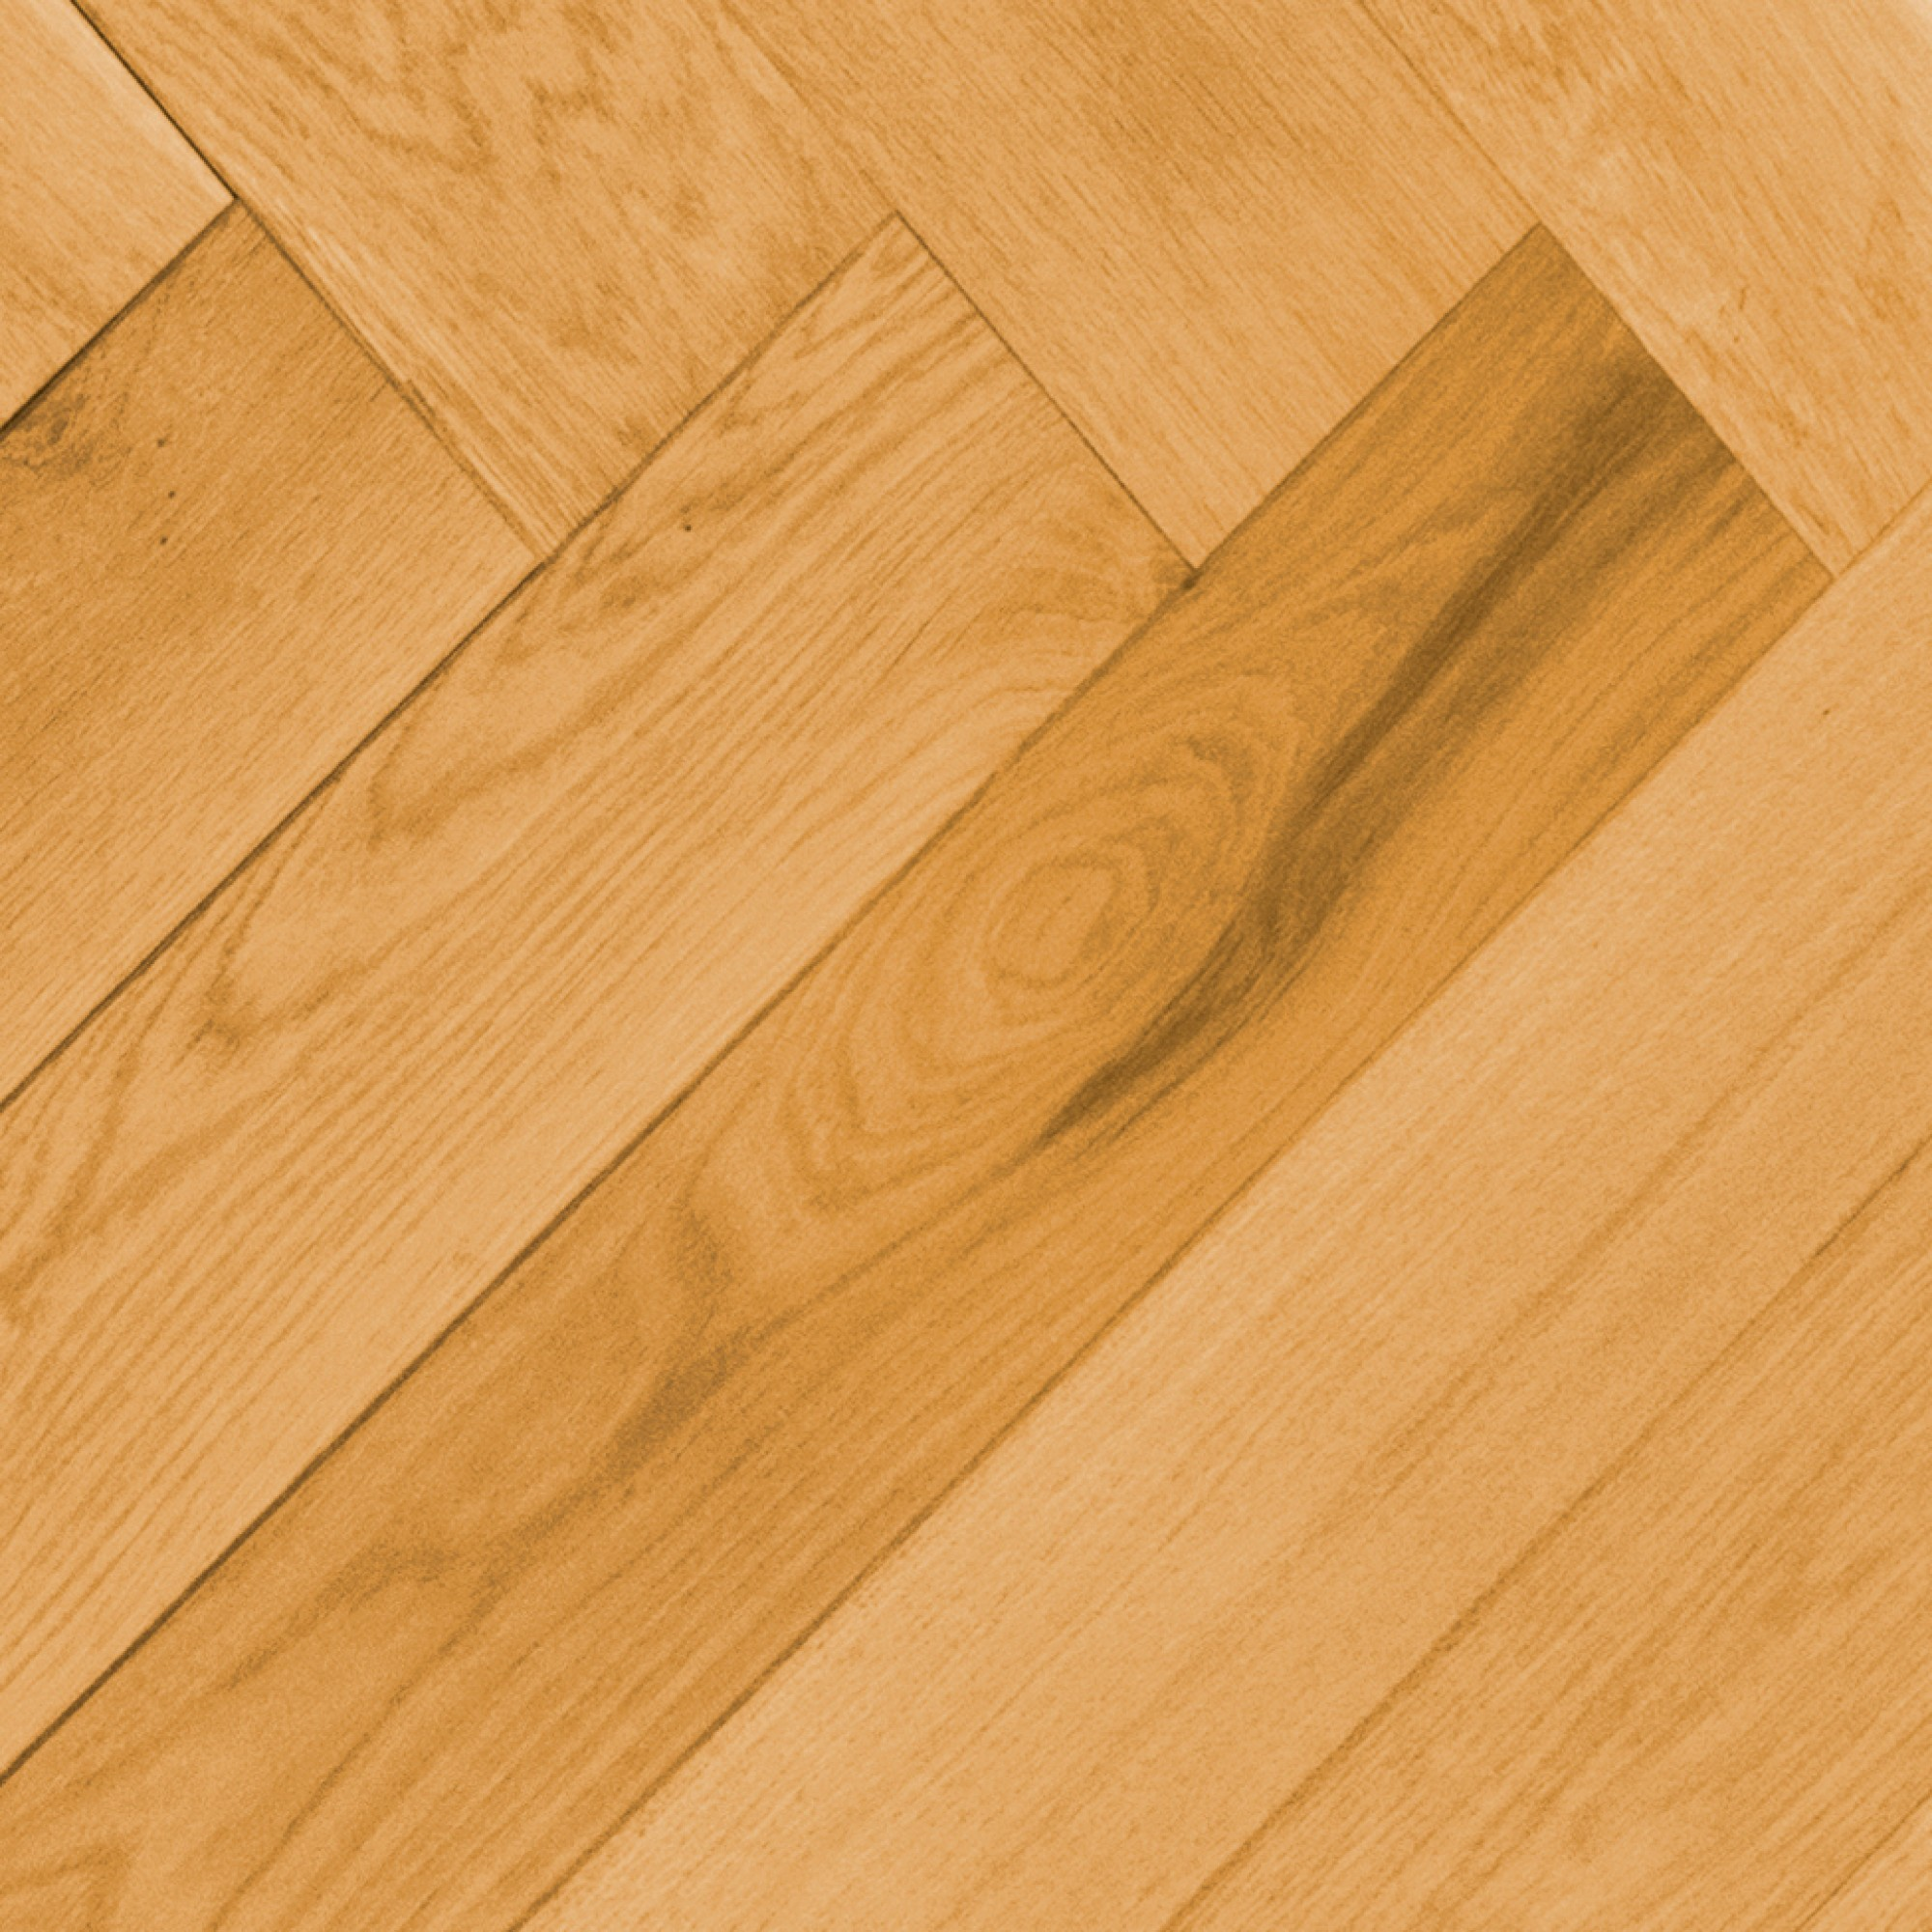 Back White Oak Natural Smooth